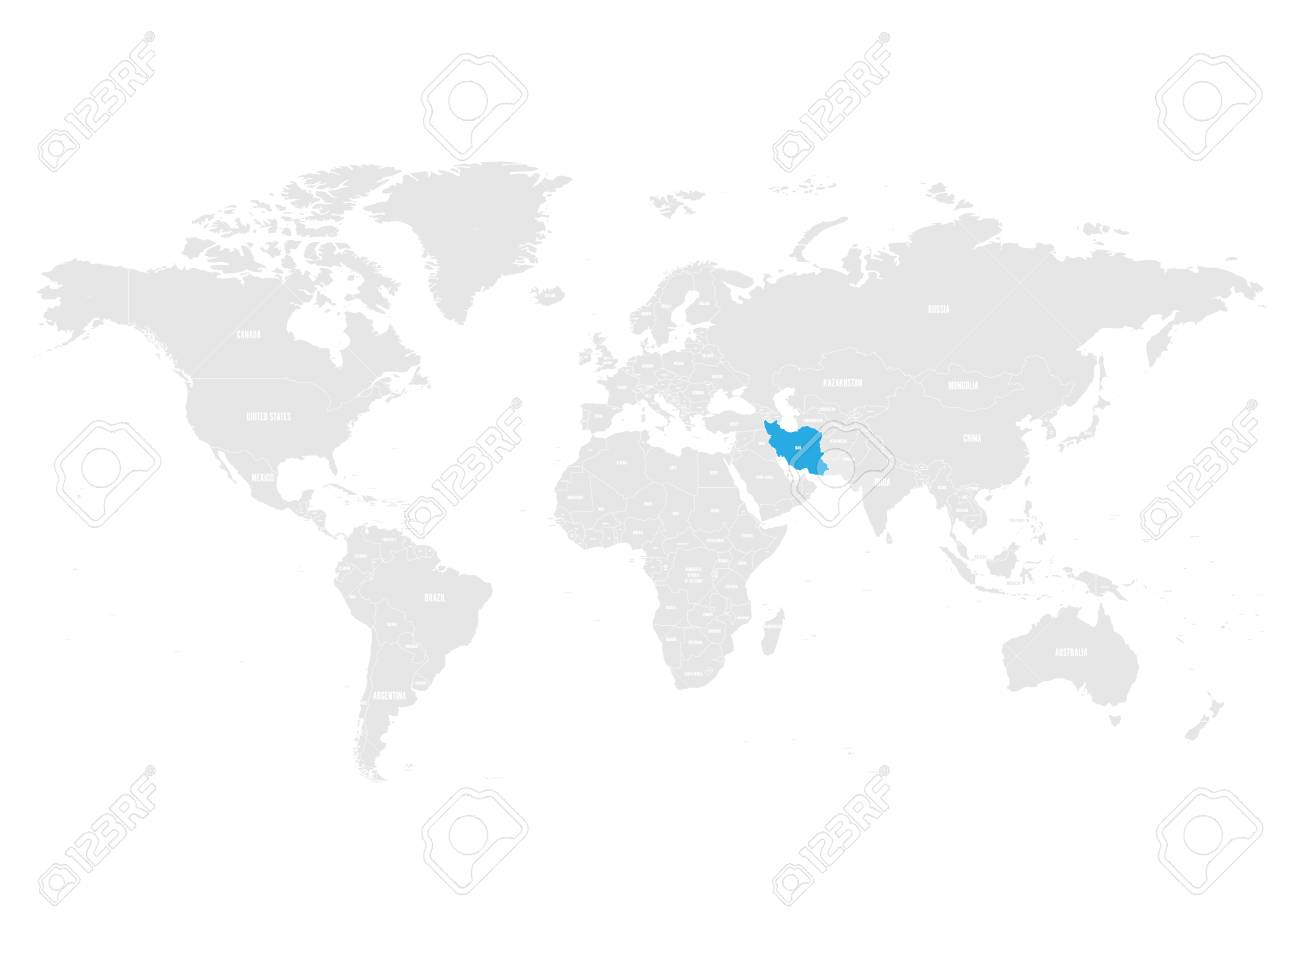 Iran Marked By Blue In Grey World Political Map Vector Illustration